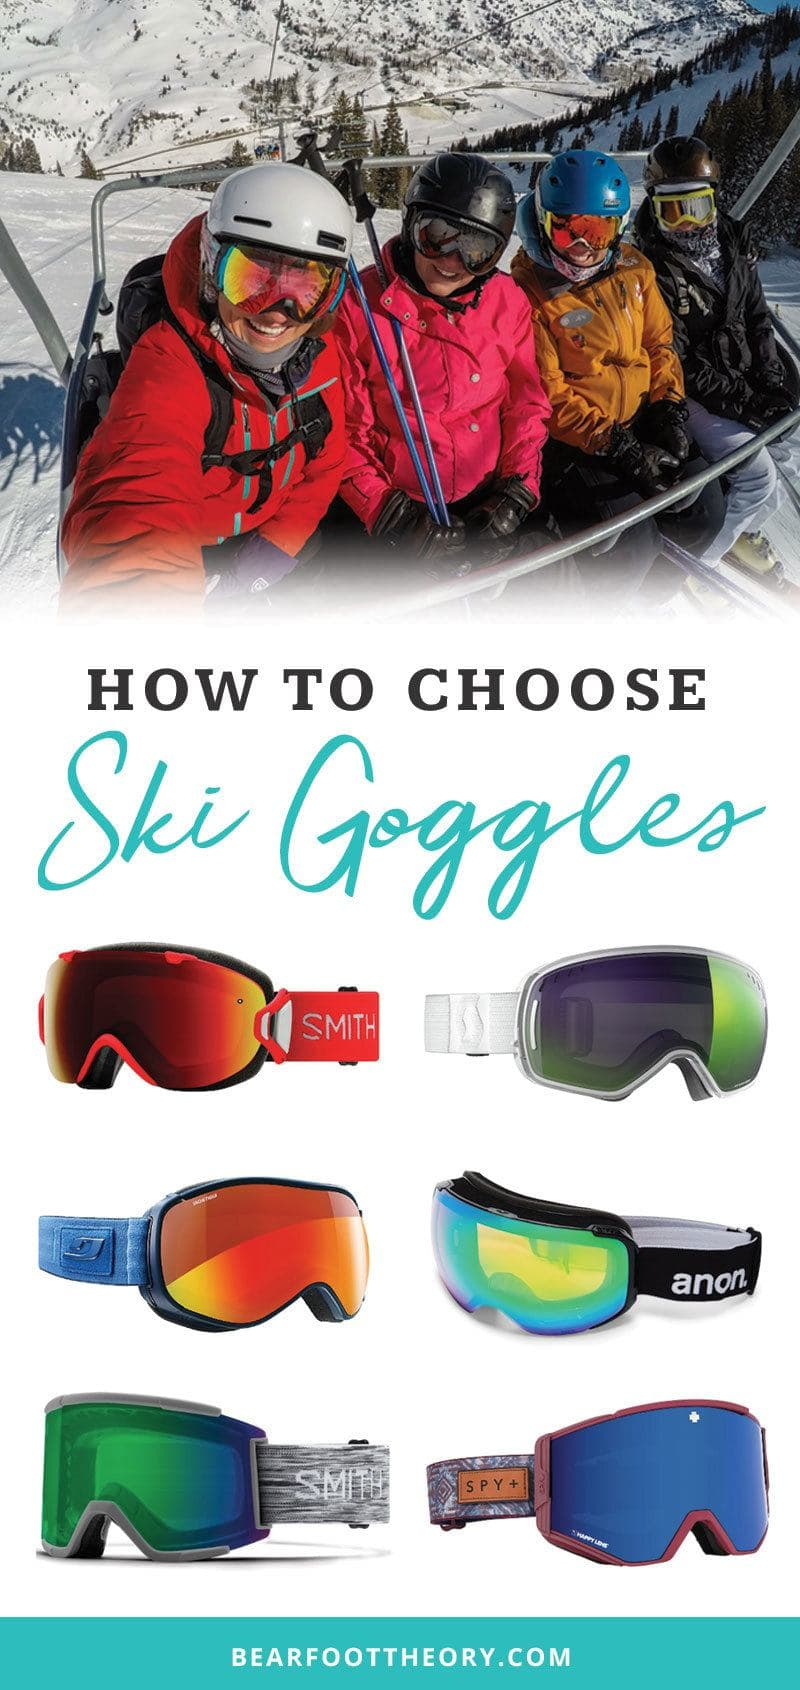 Here's everything you need to know about how to choose ski goggles, including features, fit, lens color & style. We've included our favorite ski goggles too!